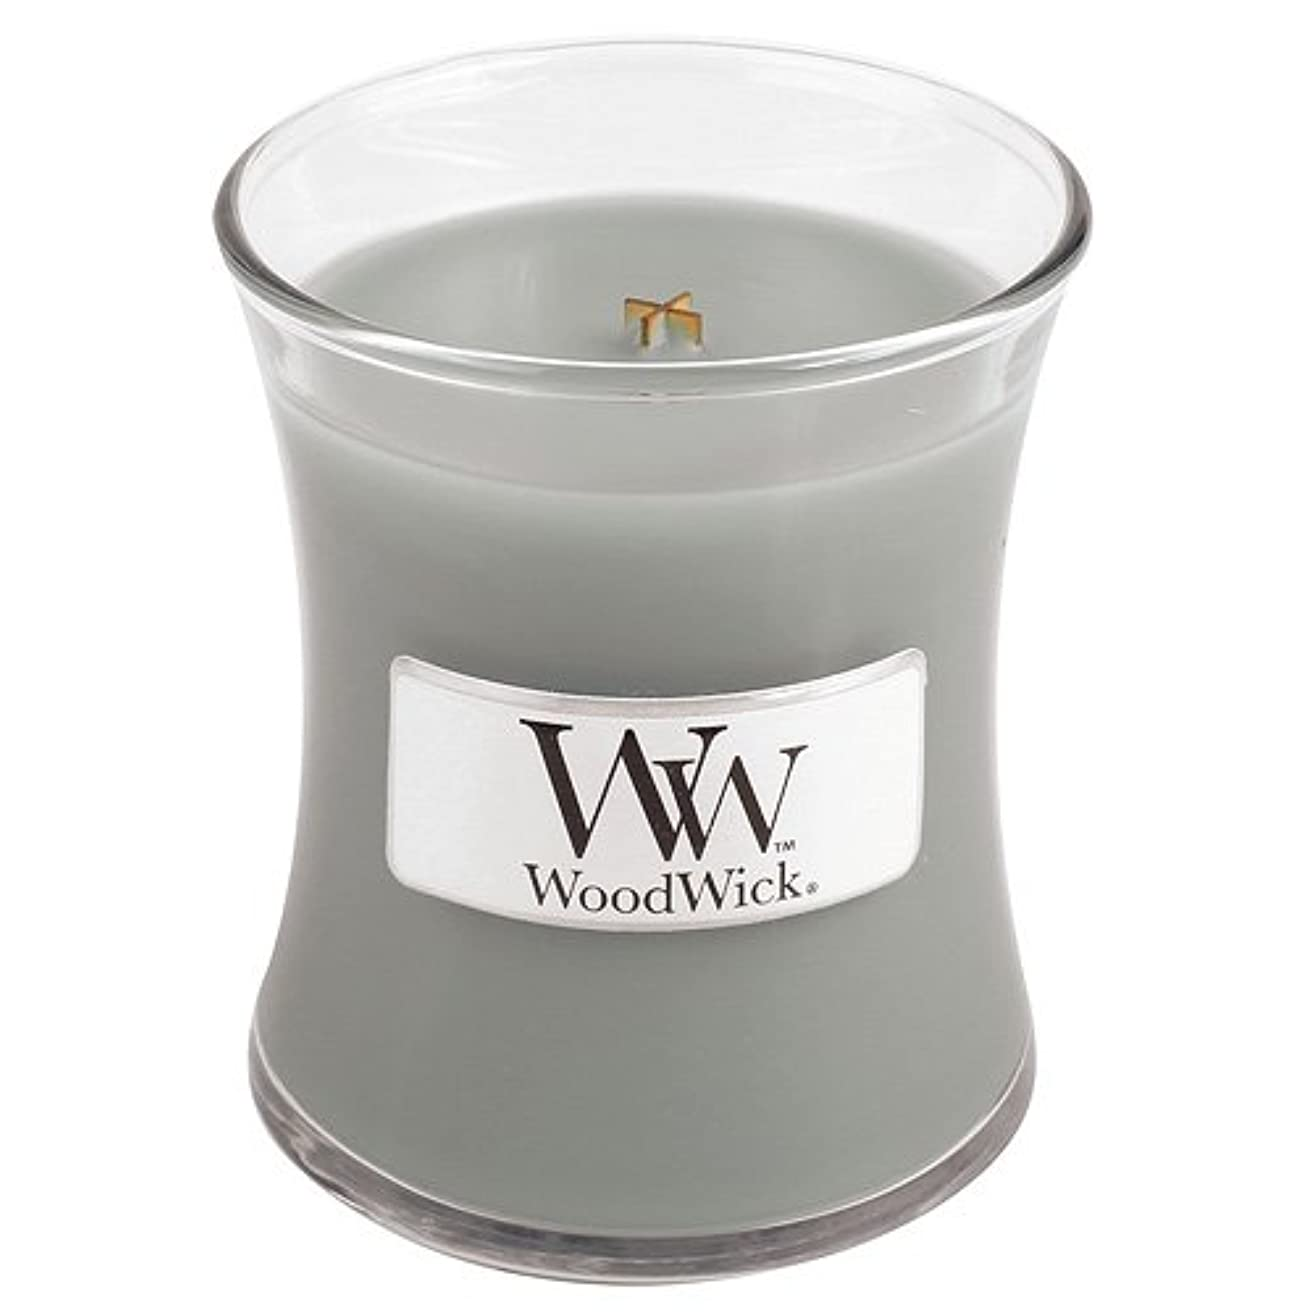 むしゃむしゃミルテラスWoodwick Mini Fireside Candle 3.4oz by WoodWick